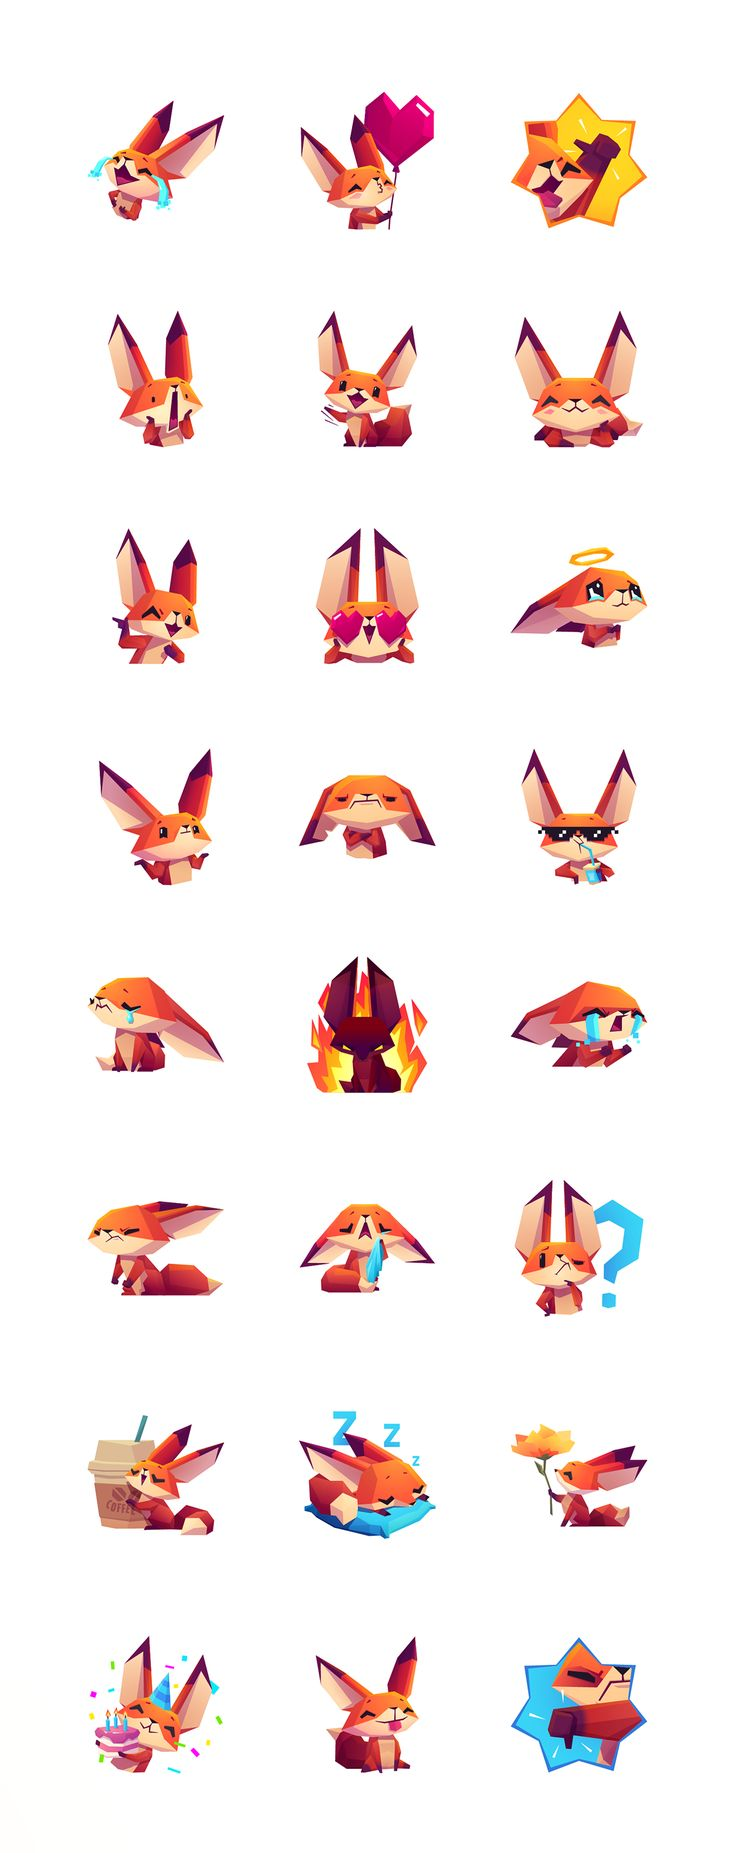 Introducing to you Sticker Pack with cute hero of our last gameThe Little Fox,a charismatic foxin low poly style. Specially made for iMessage on App Store.